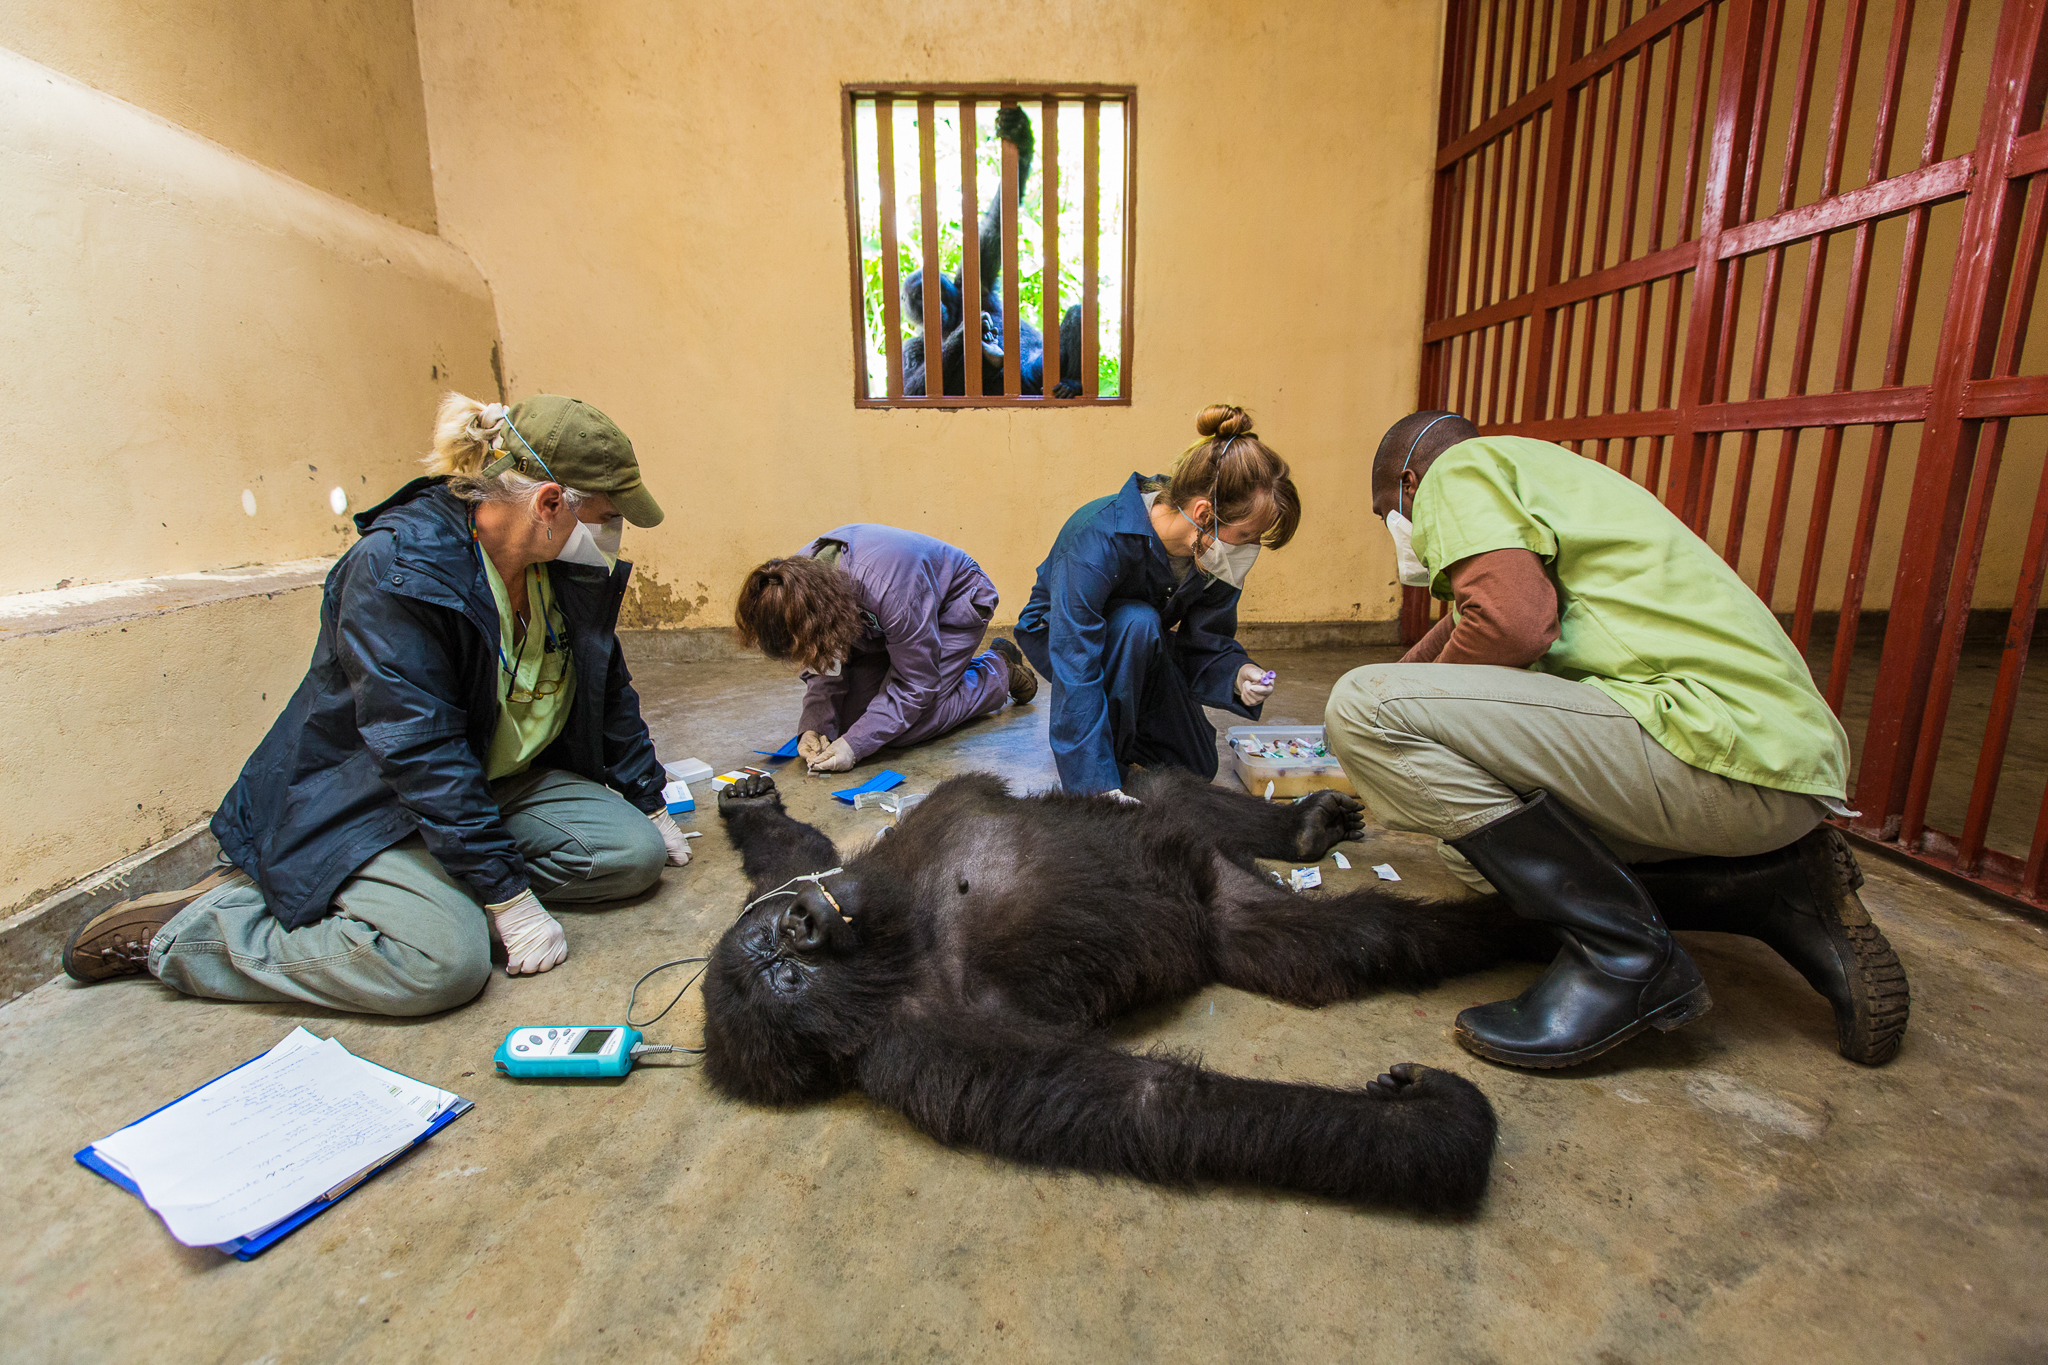 Ndeze watches with concern as the Gorilla Doctors team examines Maisha. Earlier, when Maisha was meant to be fasting in preparation for her examination, Ndeze attempted to sneak her bananas through the bars.